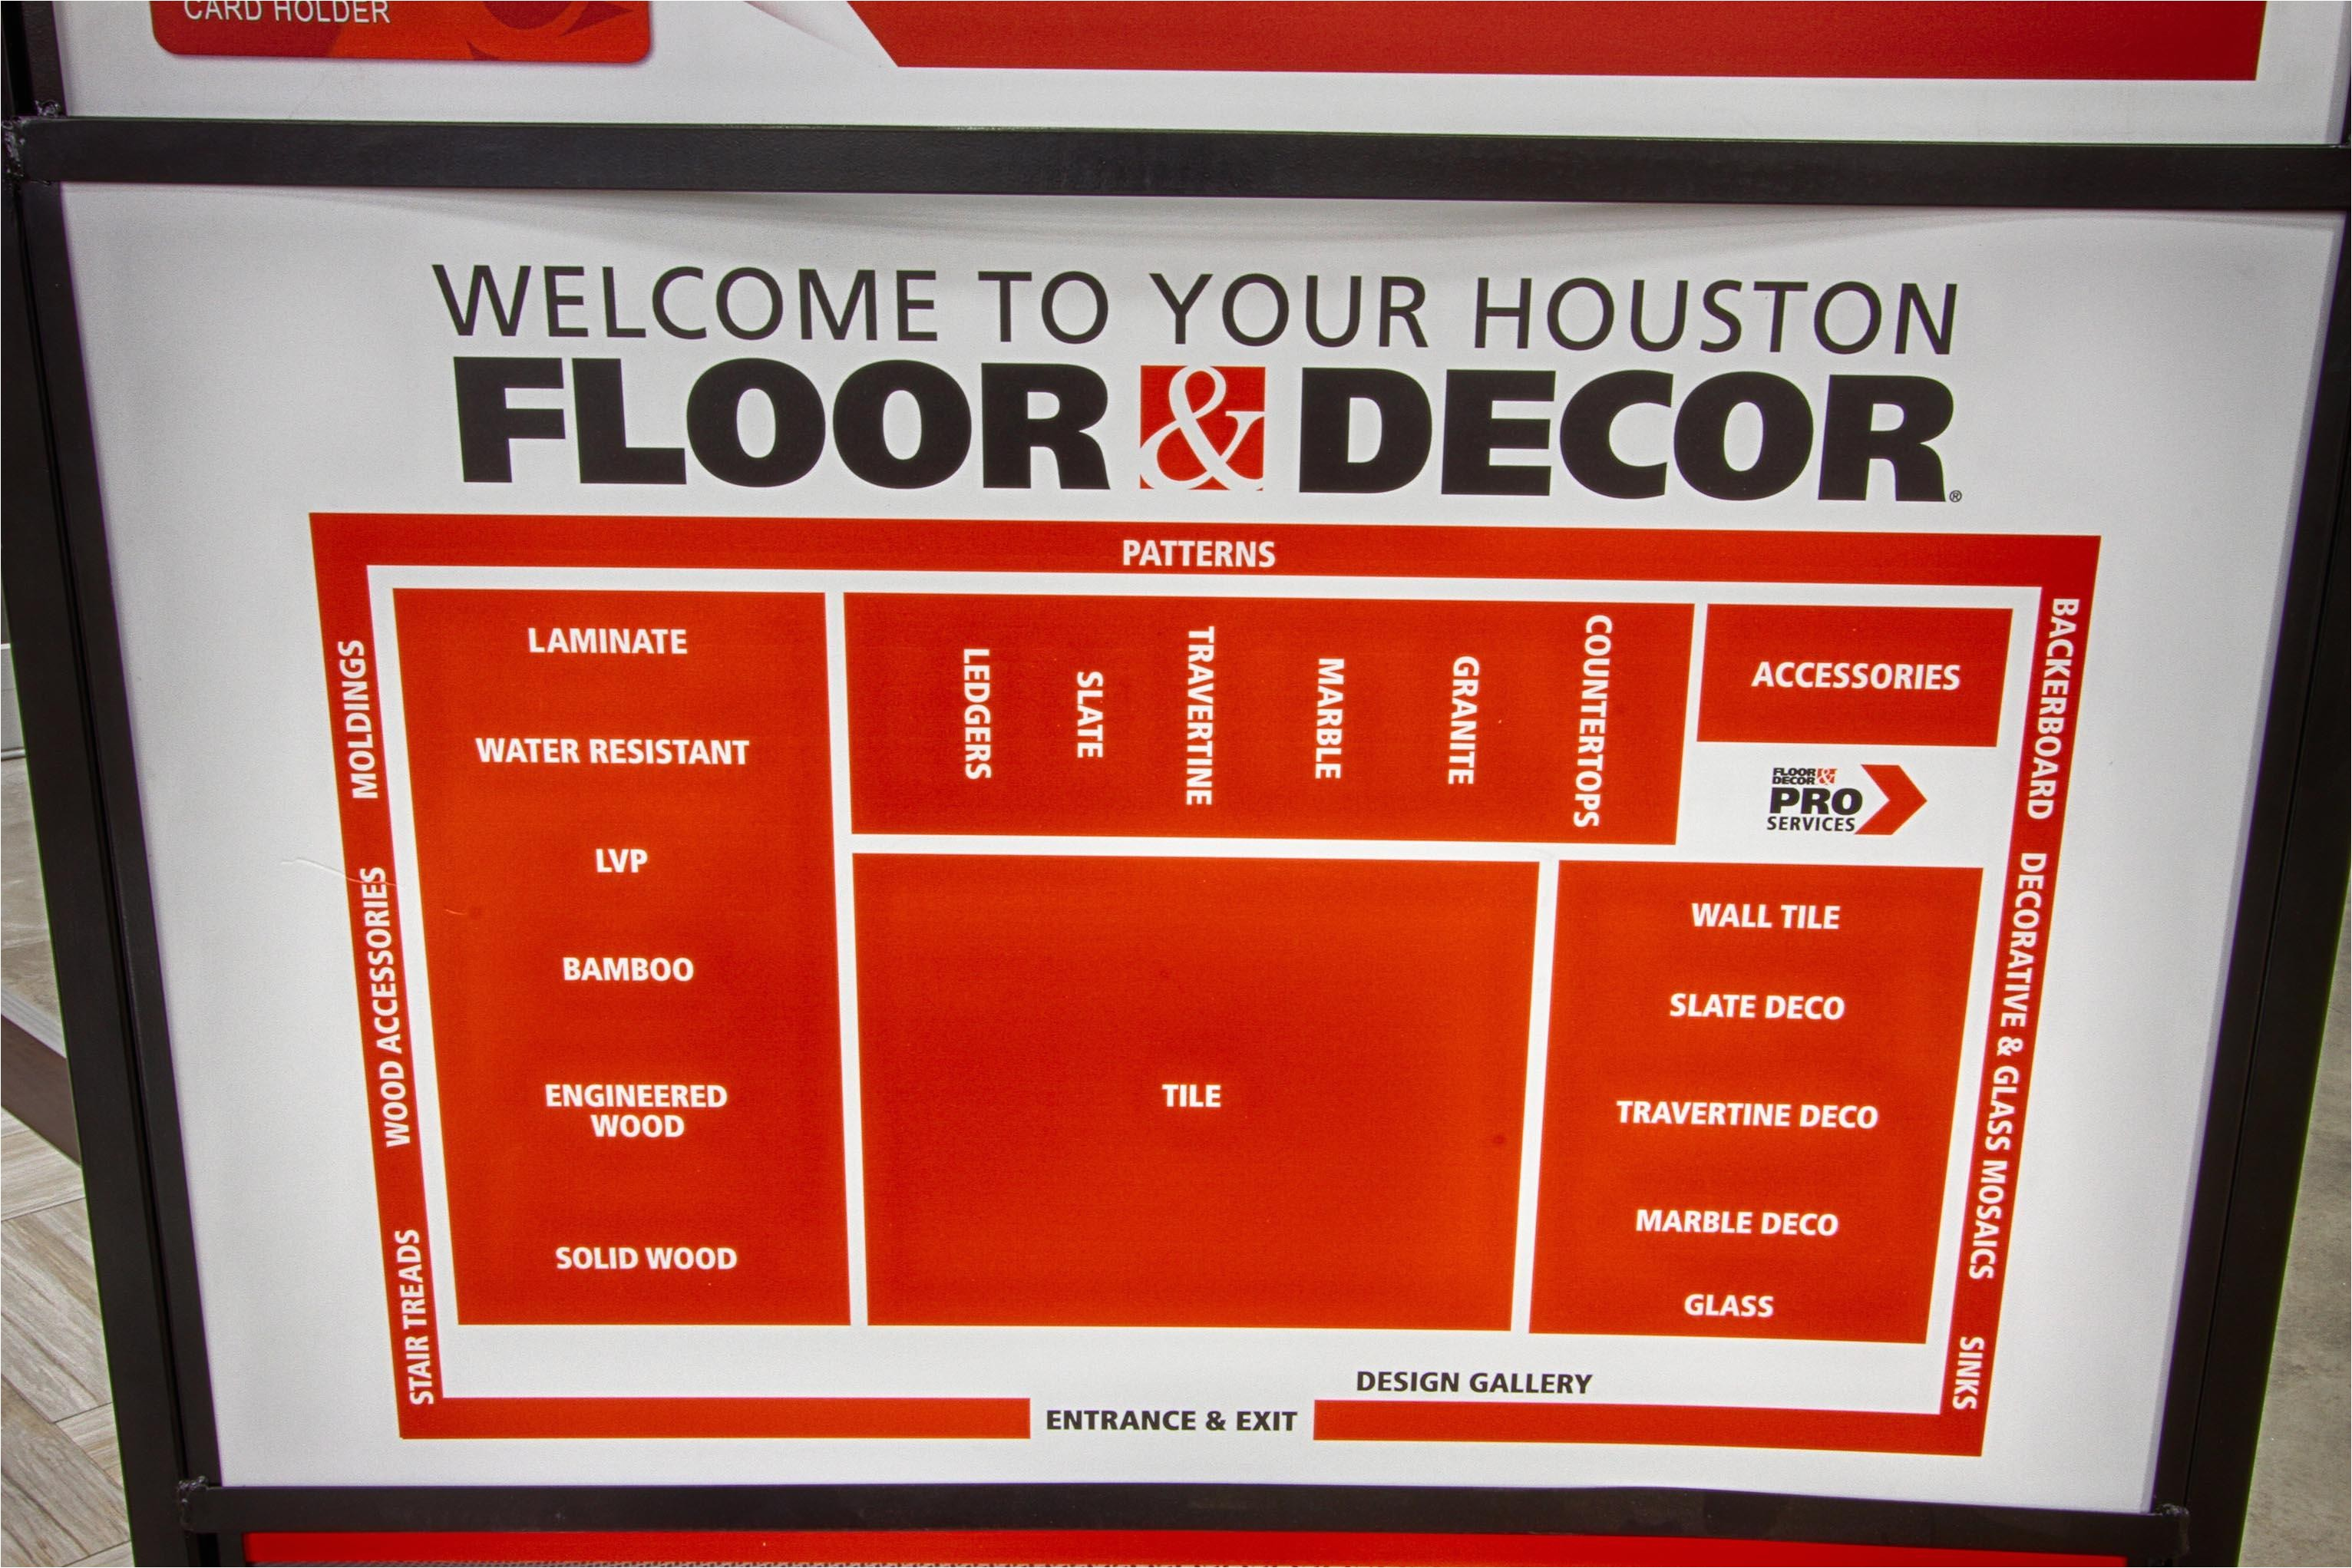 floor decor outlets houston 77090